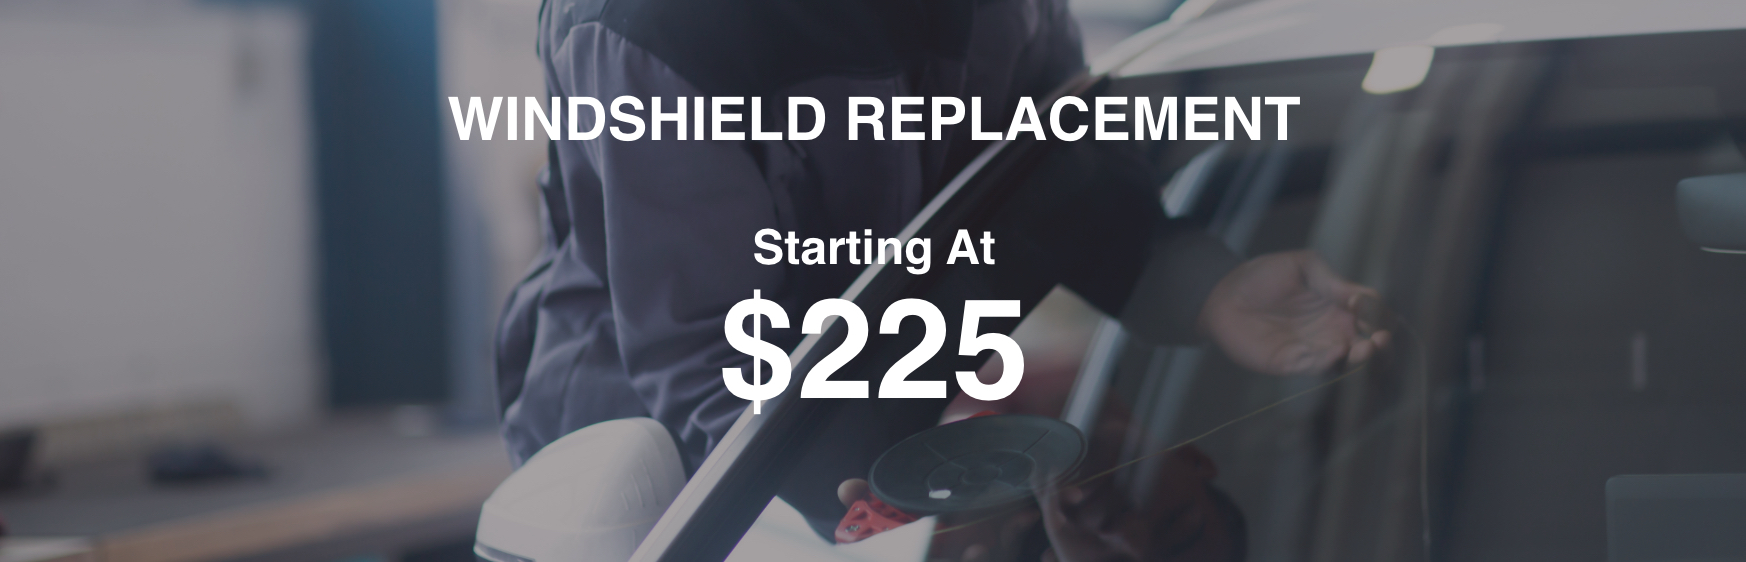 Windshield Replacement Starting At $225